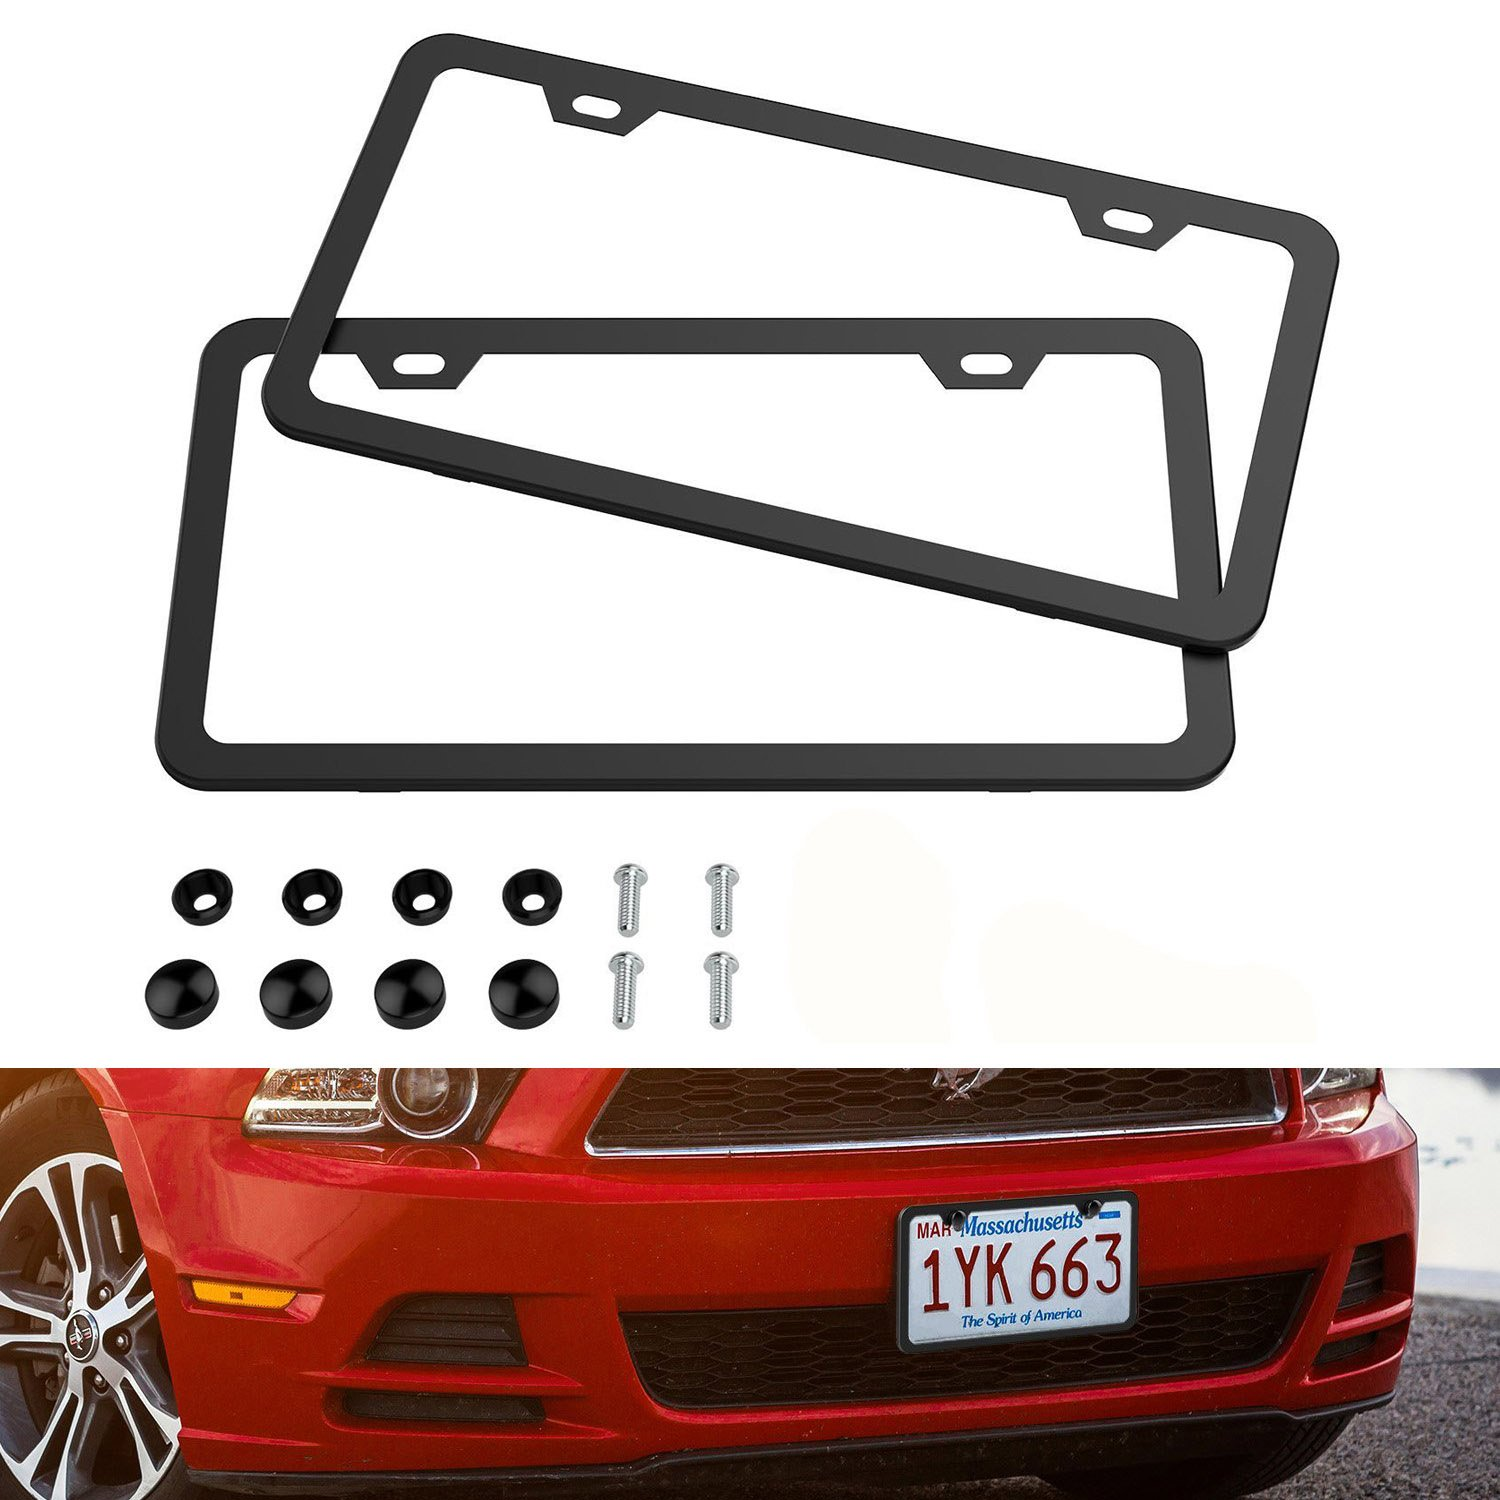 License Plate Frames AUTOPDR 2Pcs Stainless Steel Car Licence Plate Covers FastenersAluminum Alloy Slim Design with Screws Caps for Universal US Standard (Front or Rear) (Black)